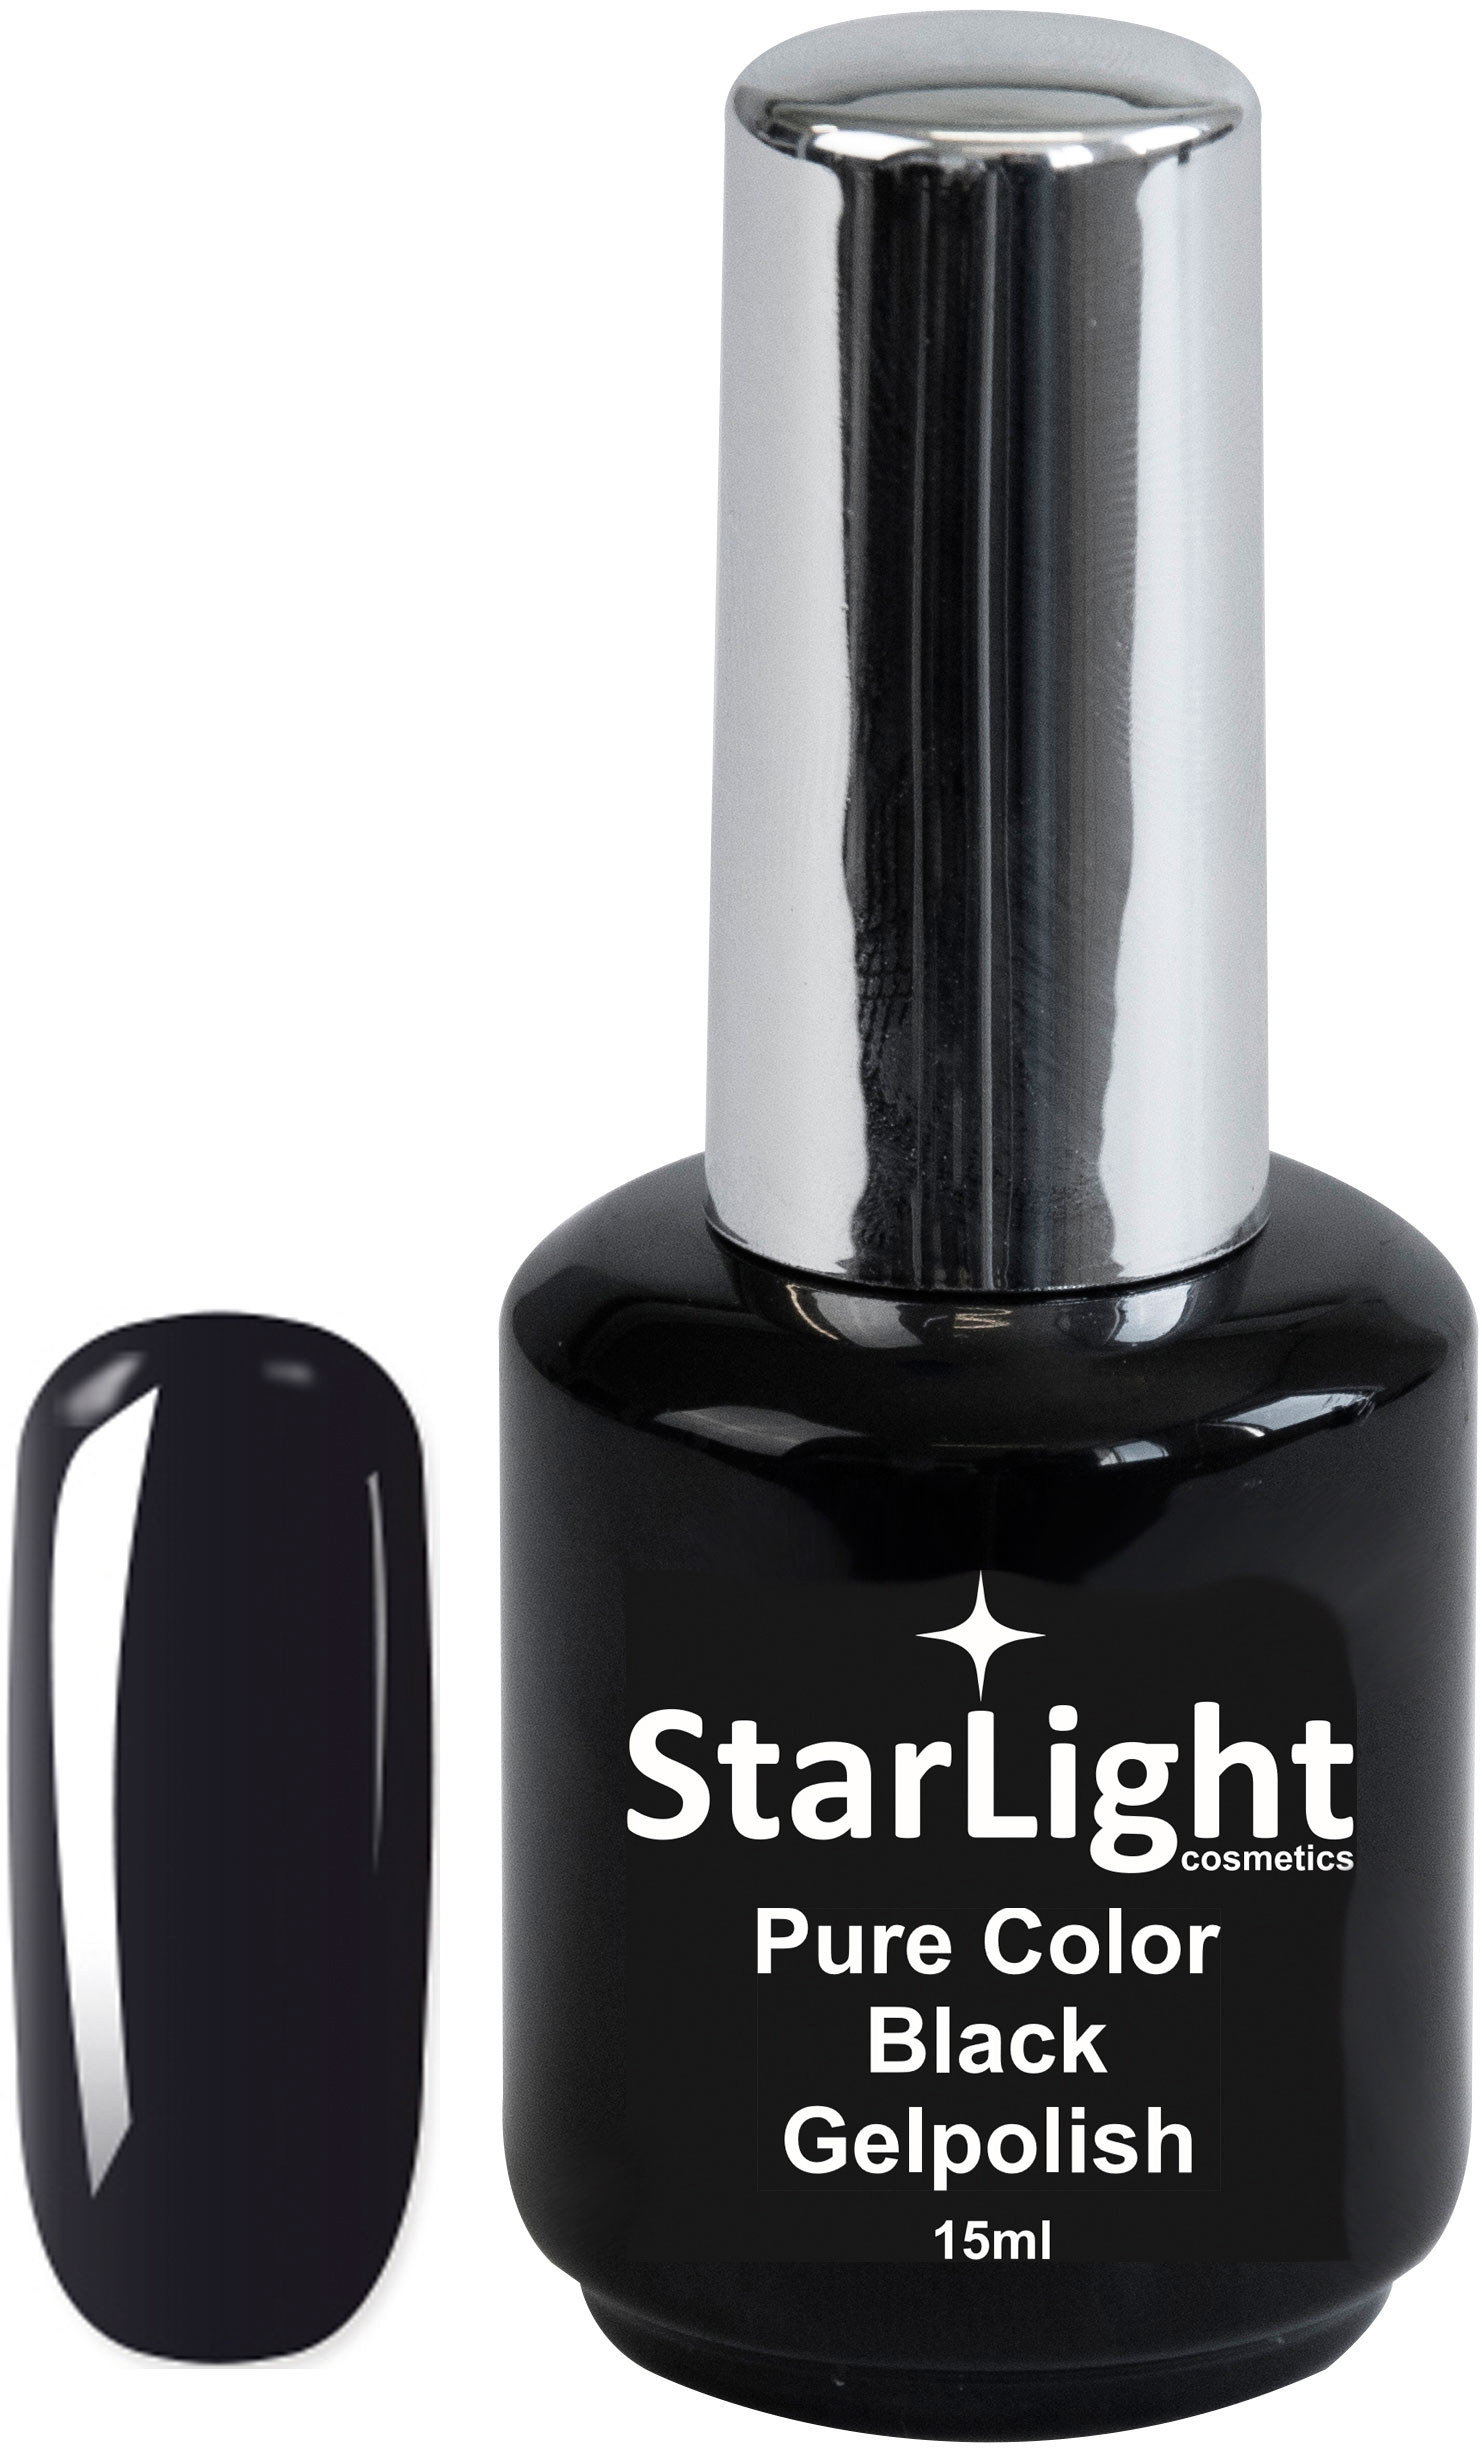 Naglar Gelpolish Pure Color Black - 15 ml